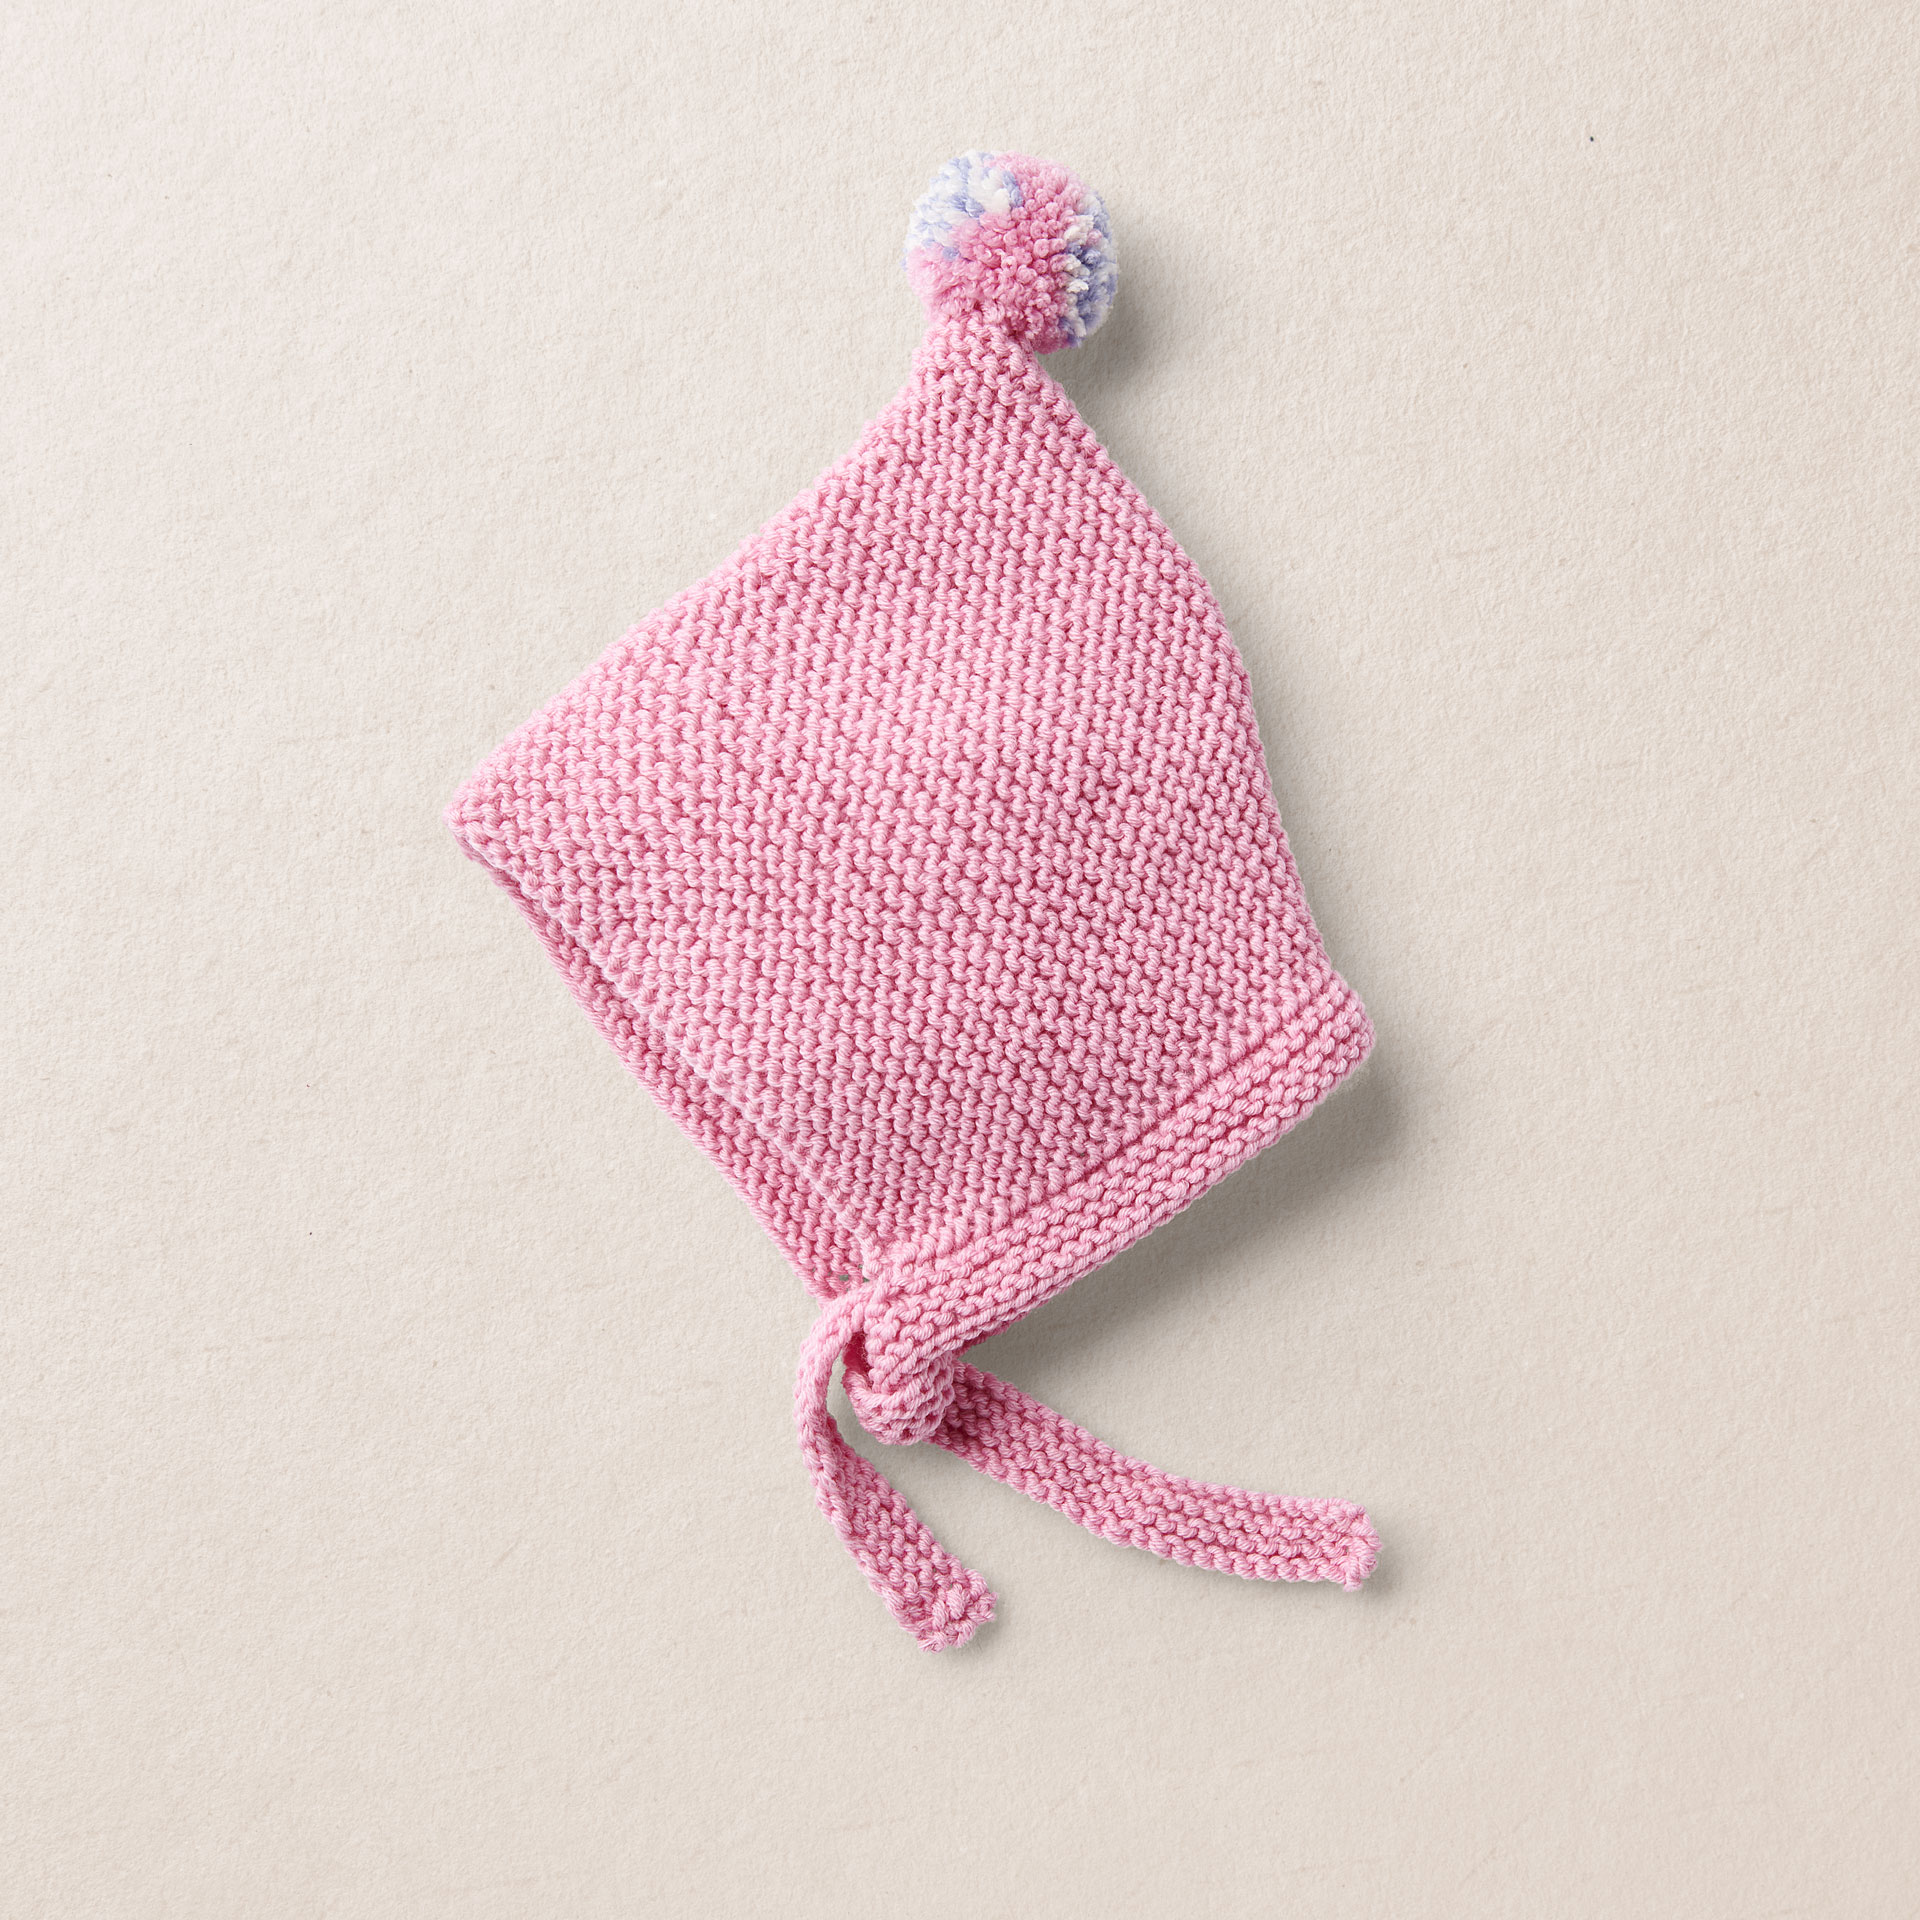 BILLIE merino wool baby knit bonnet, pink